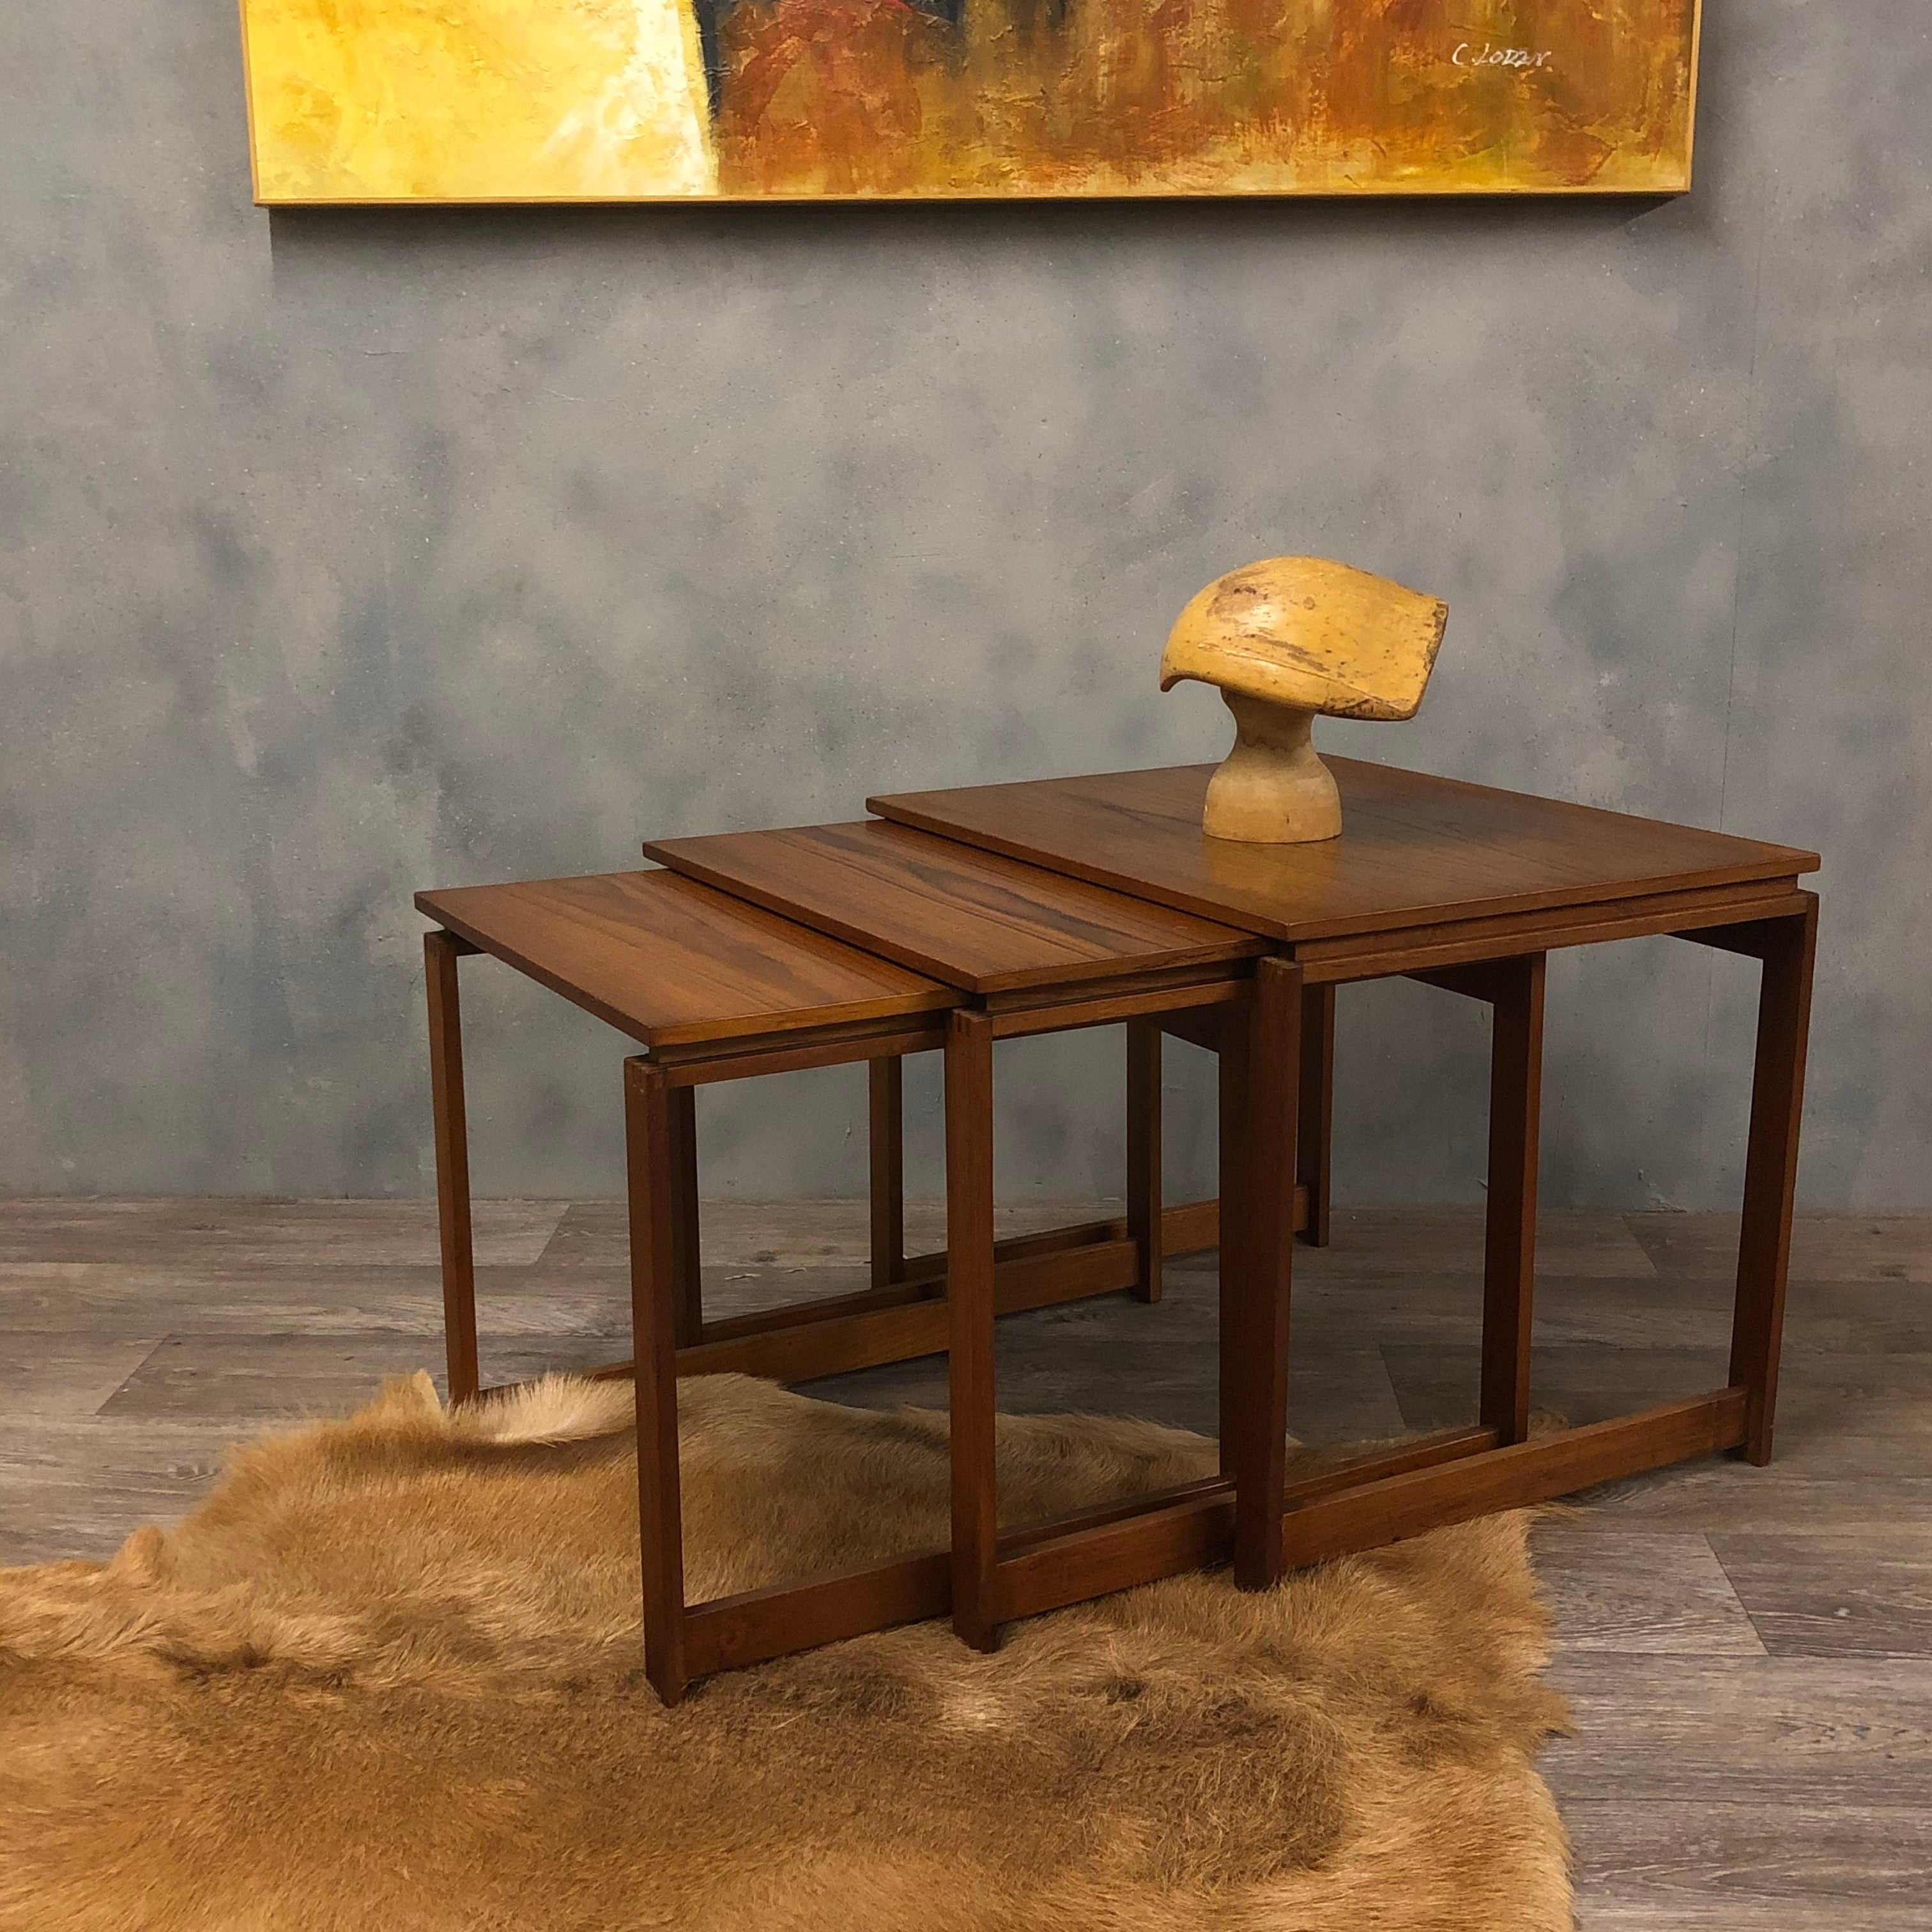 Danish Nanna Ditzel nest of tables